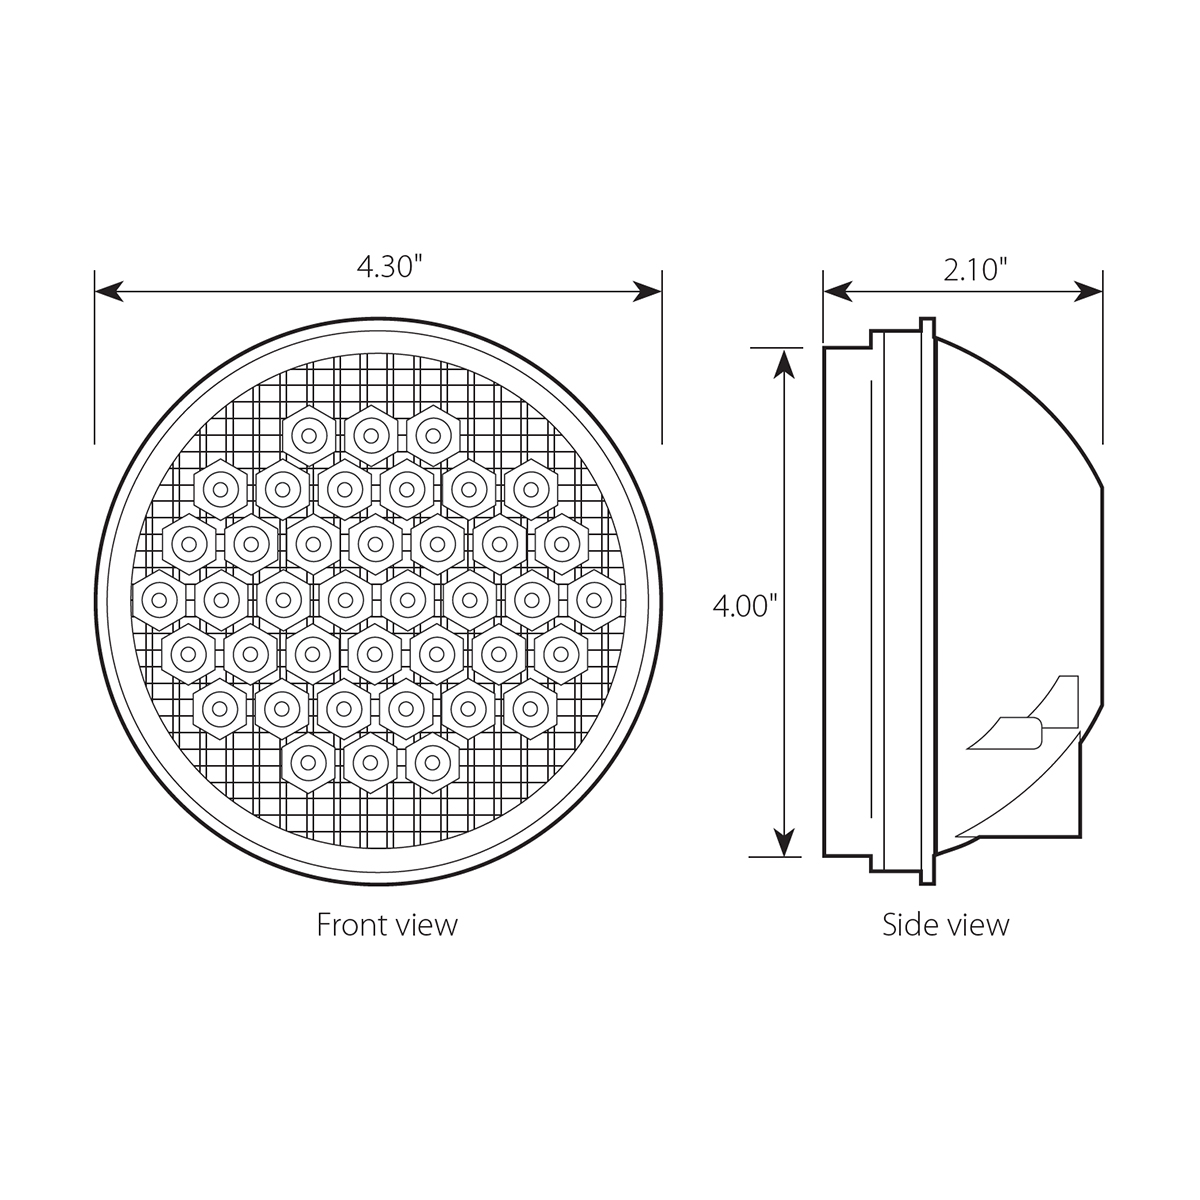 "4"" High Count LED Light - Diagram"